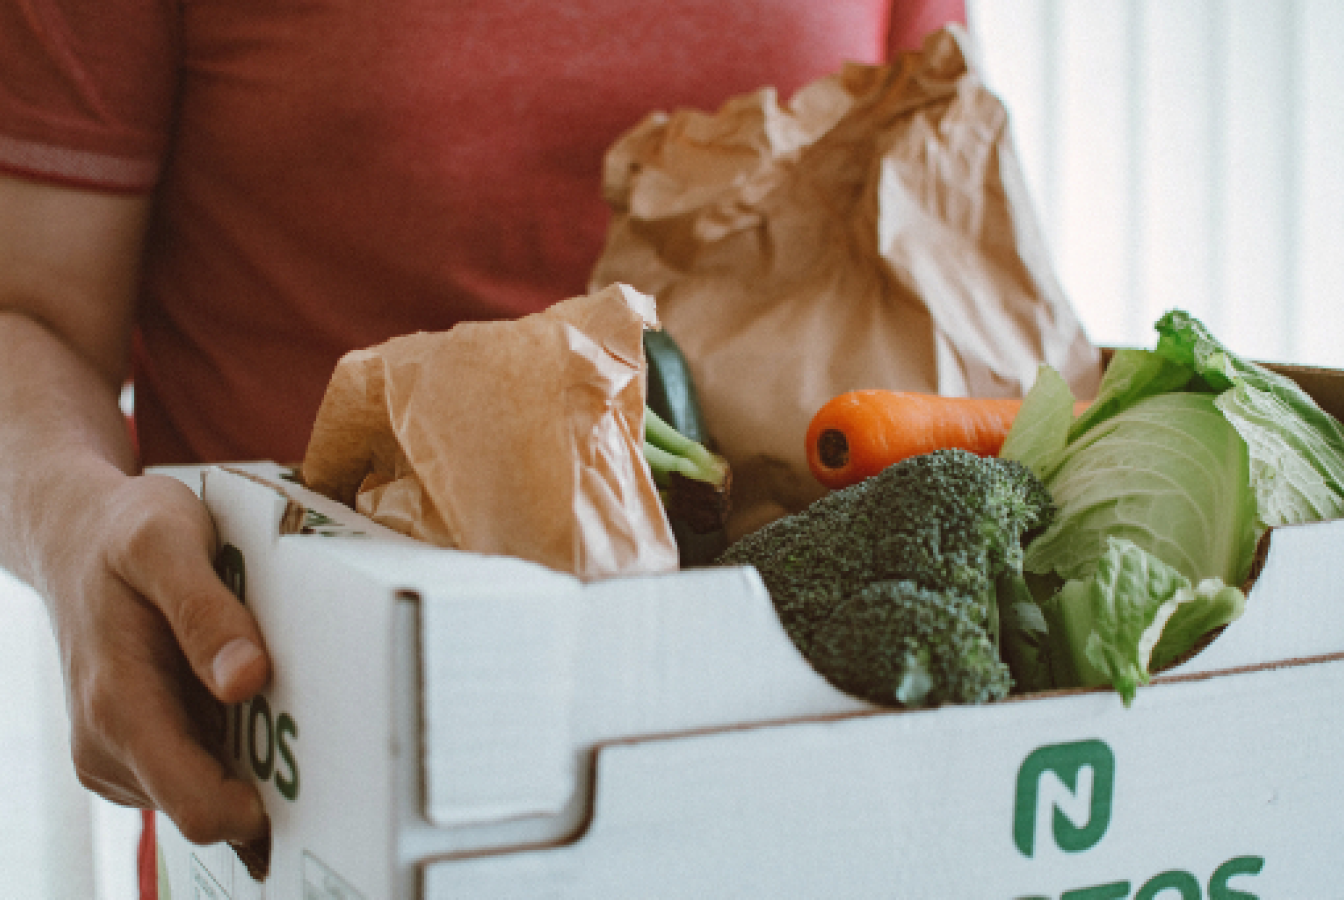 A meal kit delivery of vegetables being used for a meat-free meal